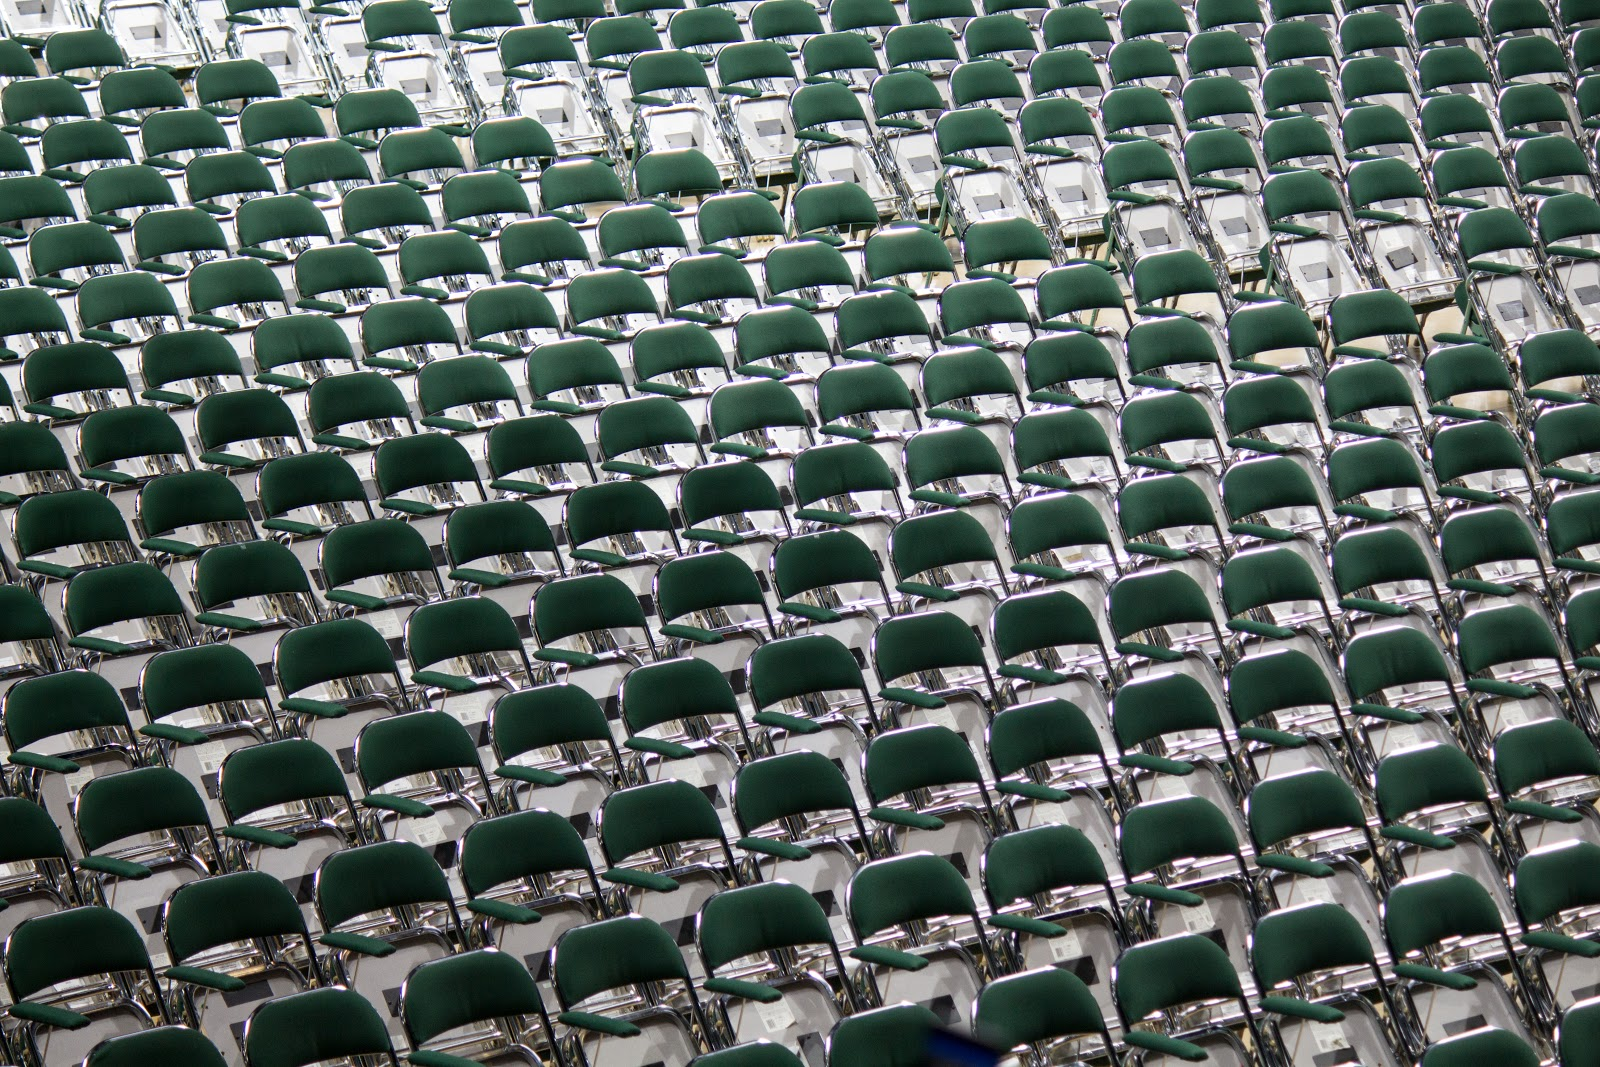 Rows of empty green chairs from a sports stadium